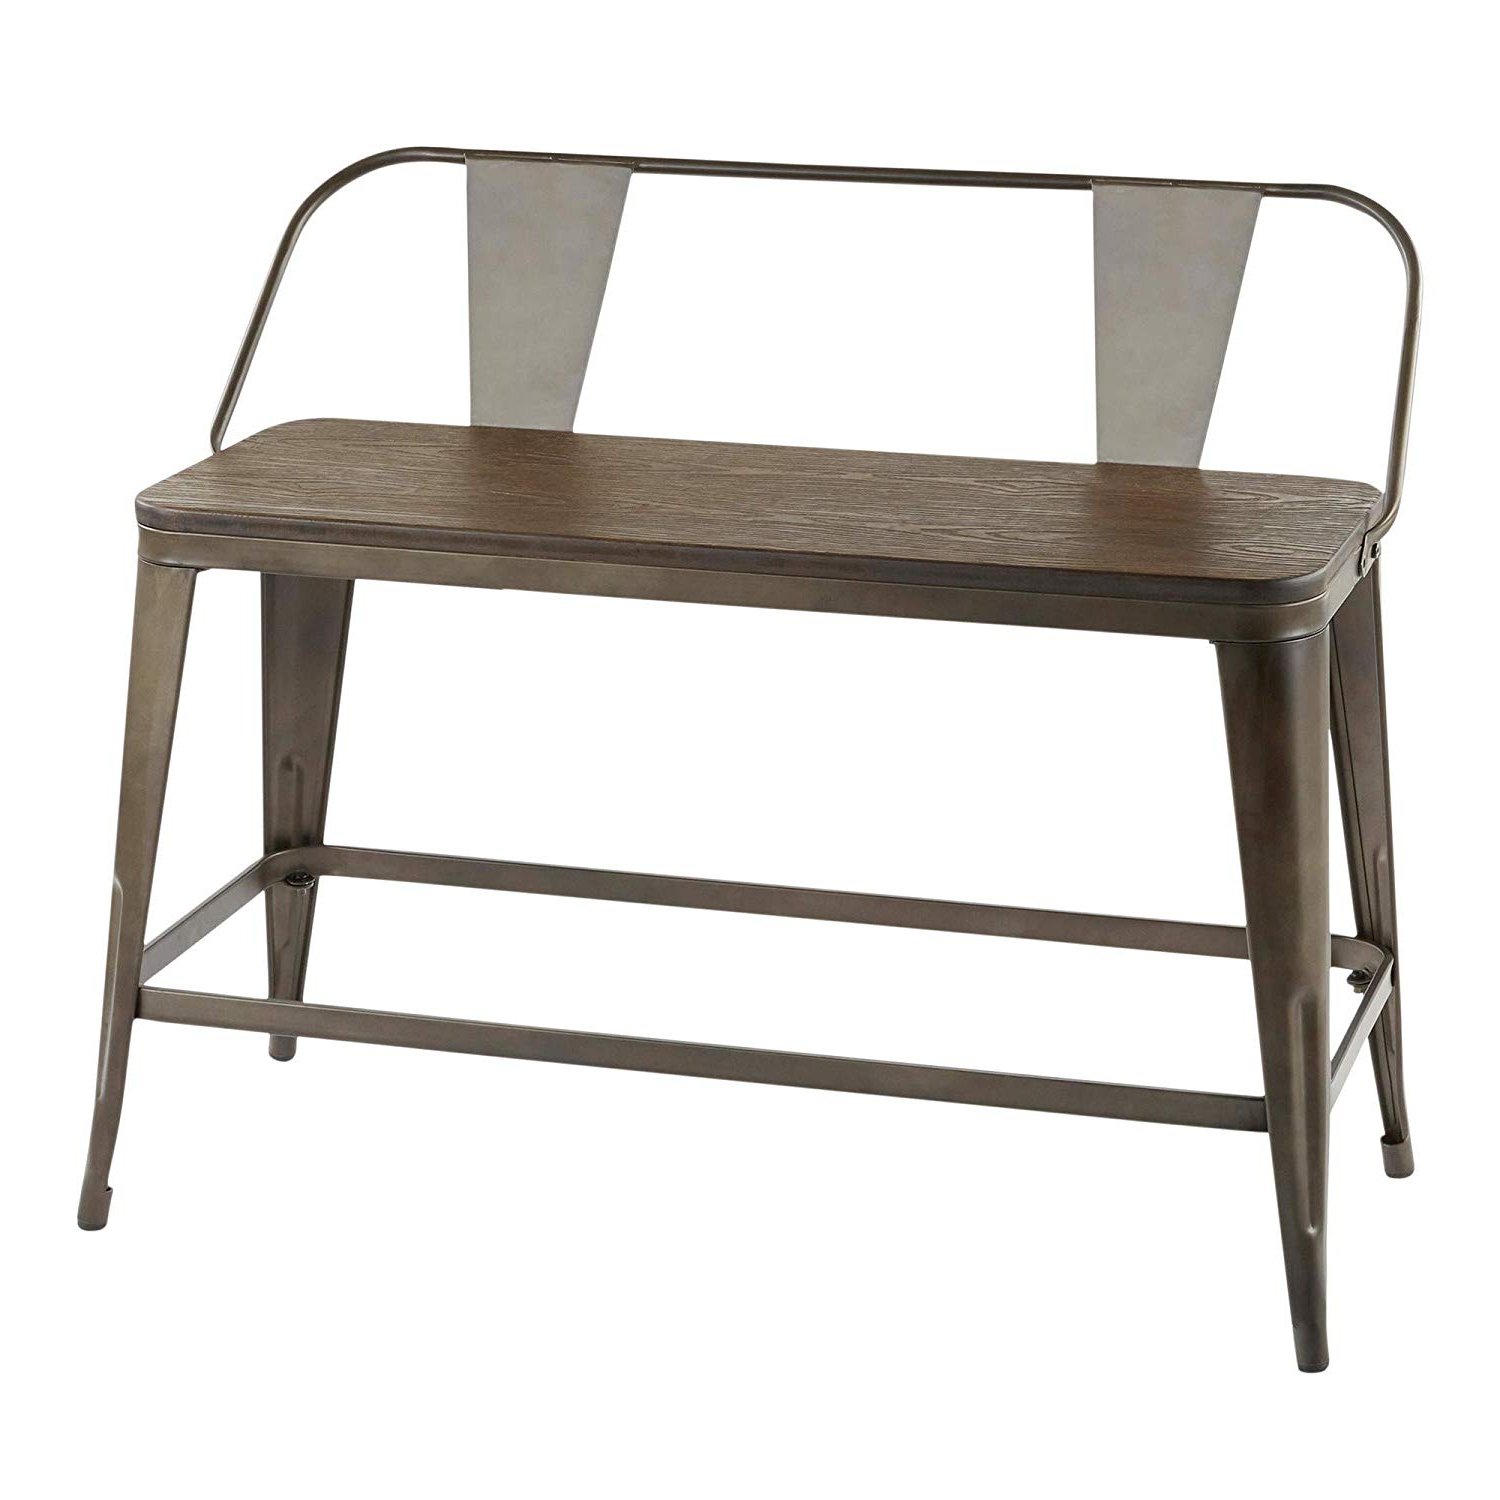 Trendy Amazon: Lumisource Counter Bench In Antique And Espresso Inside Vintage Cream Frame And Espresso Bamboo Dining Tables (View 13 of 30)